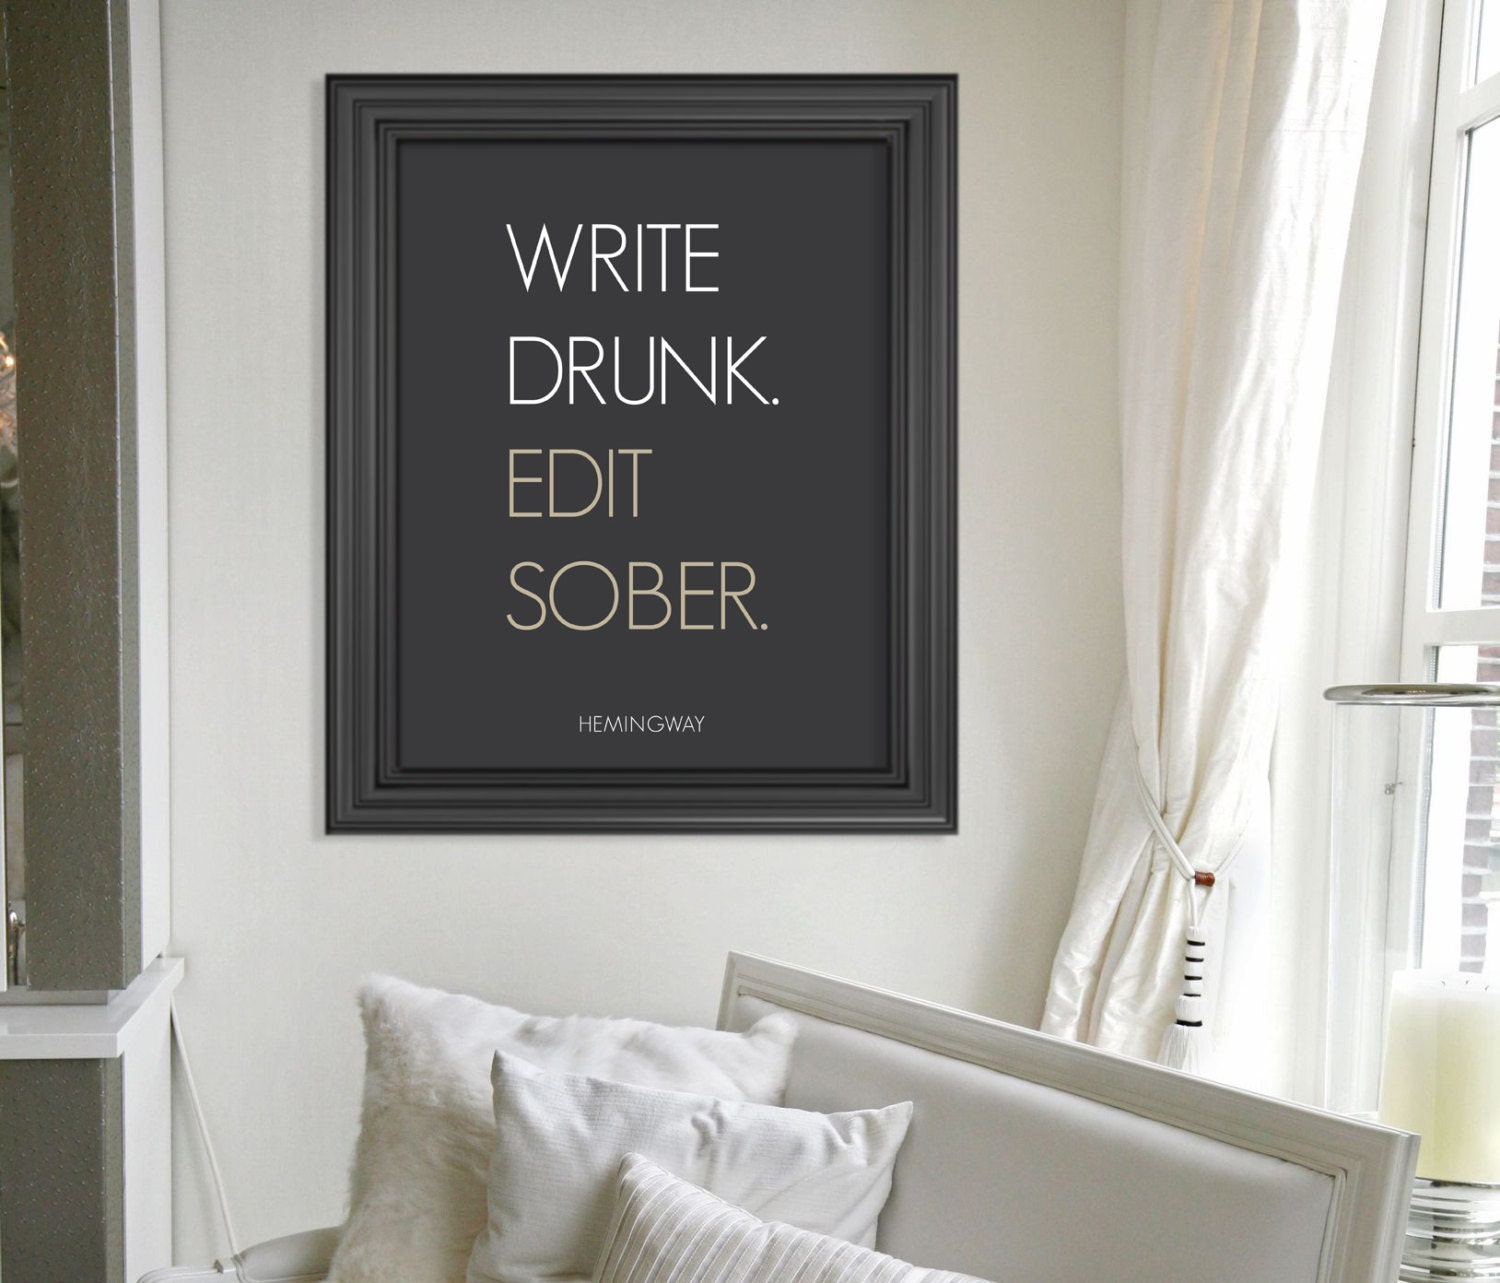 Write Drunk Edit Sober Ernest Hemingway Quote Art Print // Typographical Poster // Modern Dorm Room Decor - HARVEYGREY